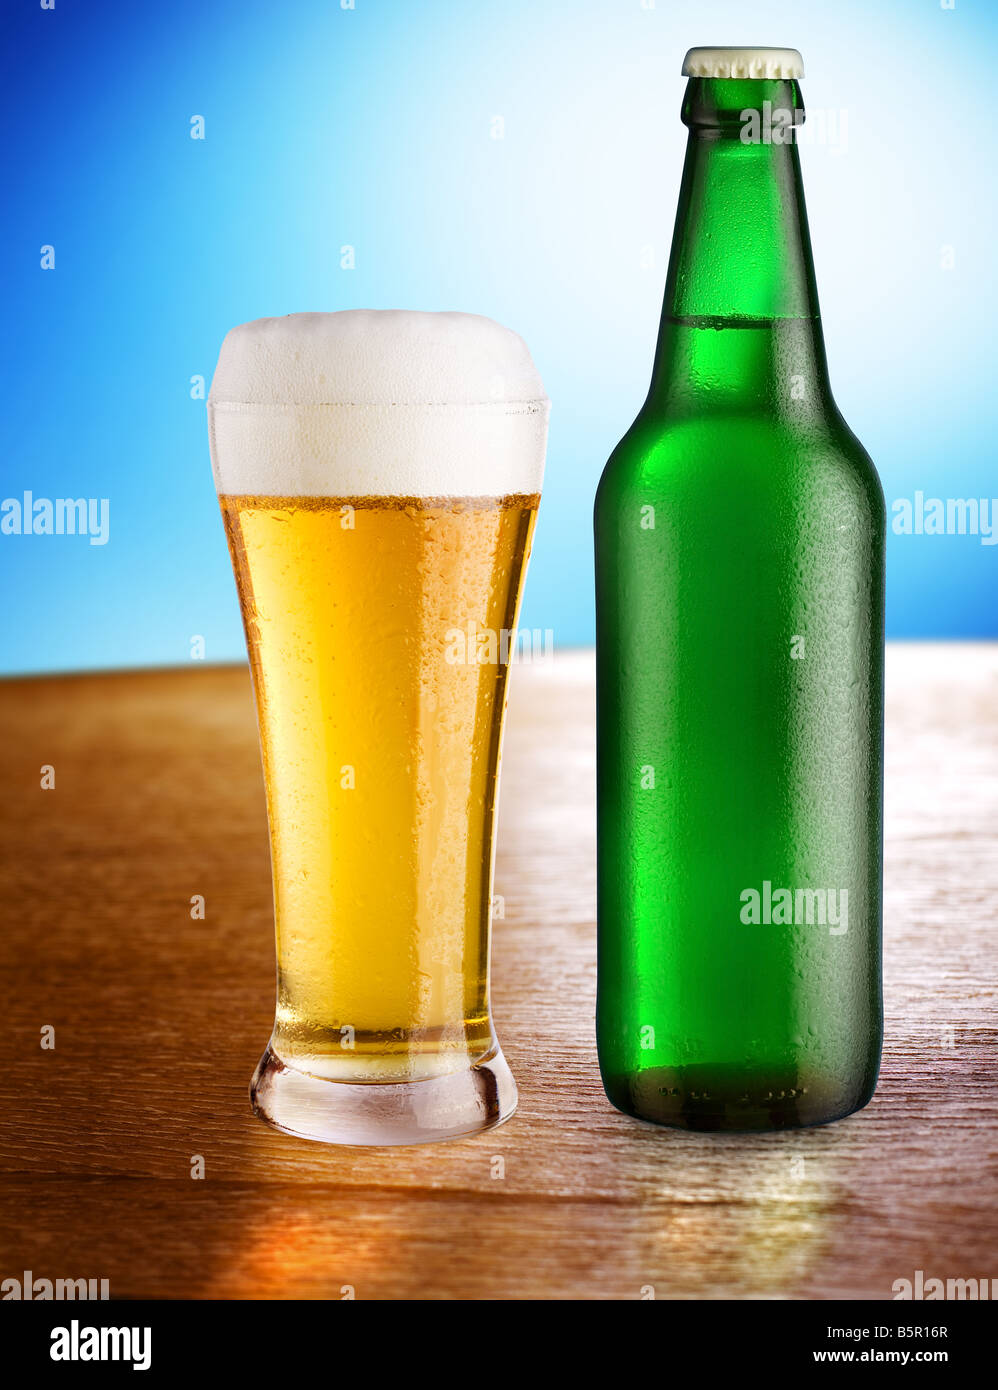 Glass with beer and bottle stand on a table on a blue background Stock Photo